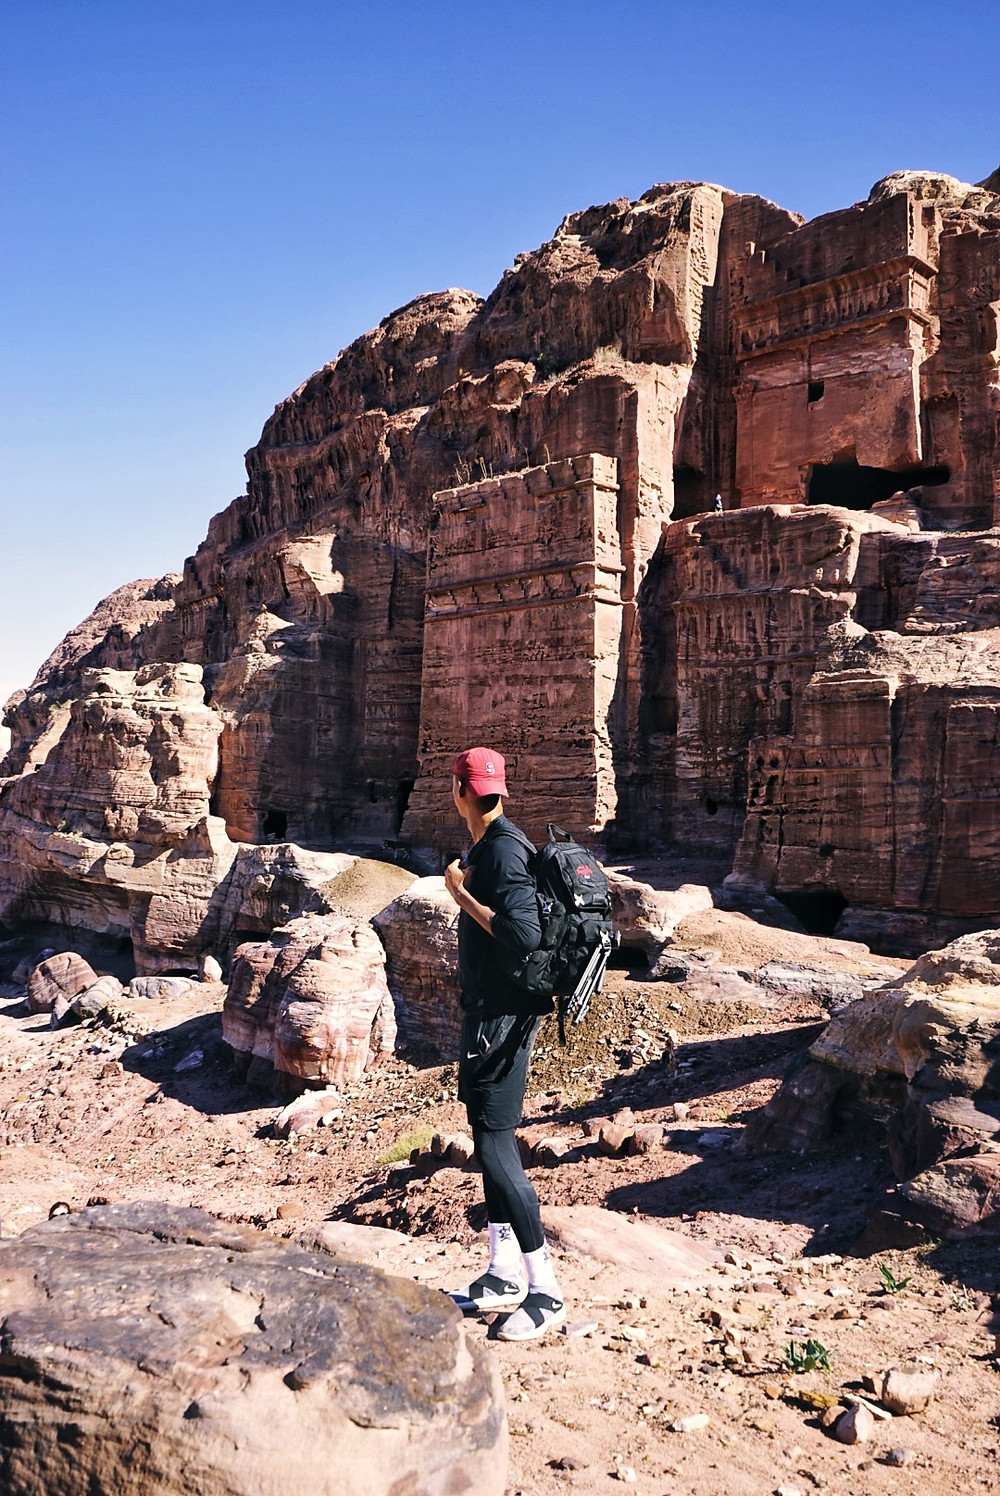 Hike to the Royal Tombs in the ancient city of Petra, Jordan.